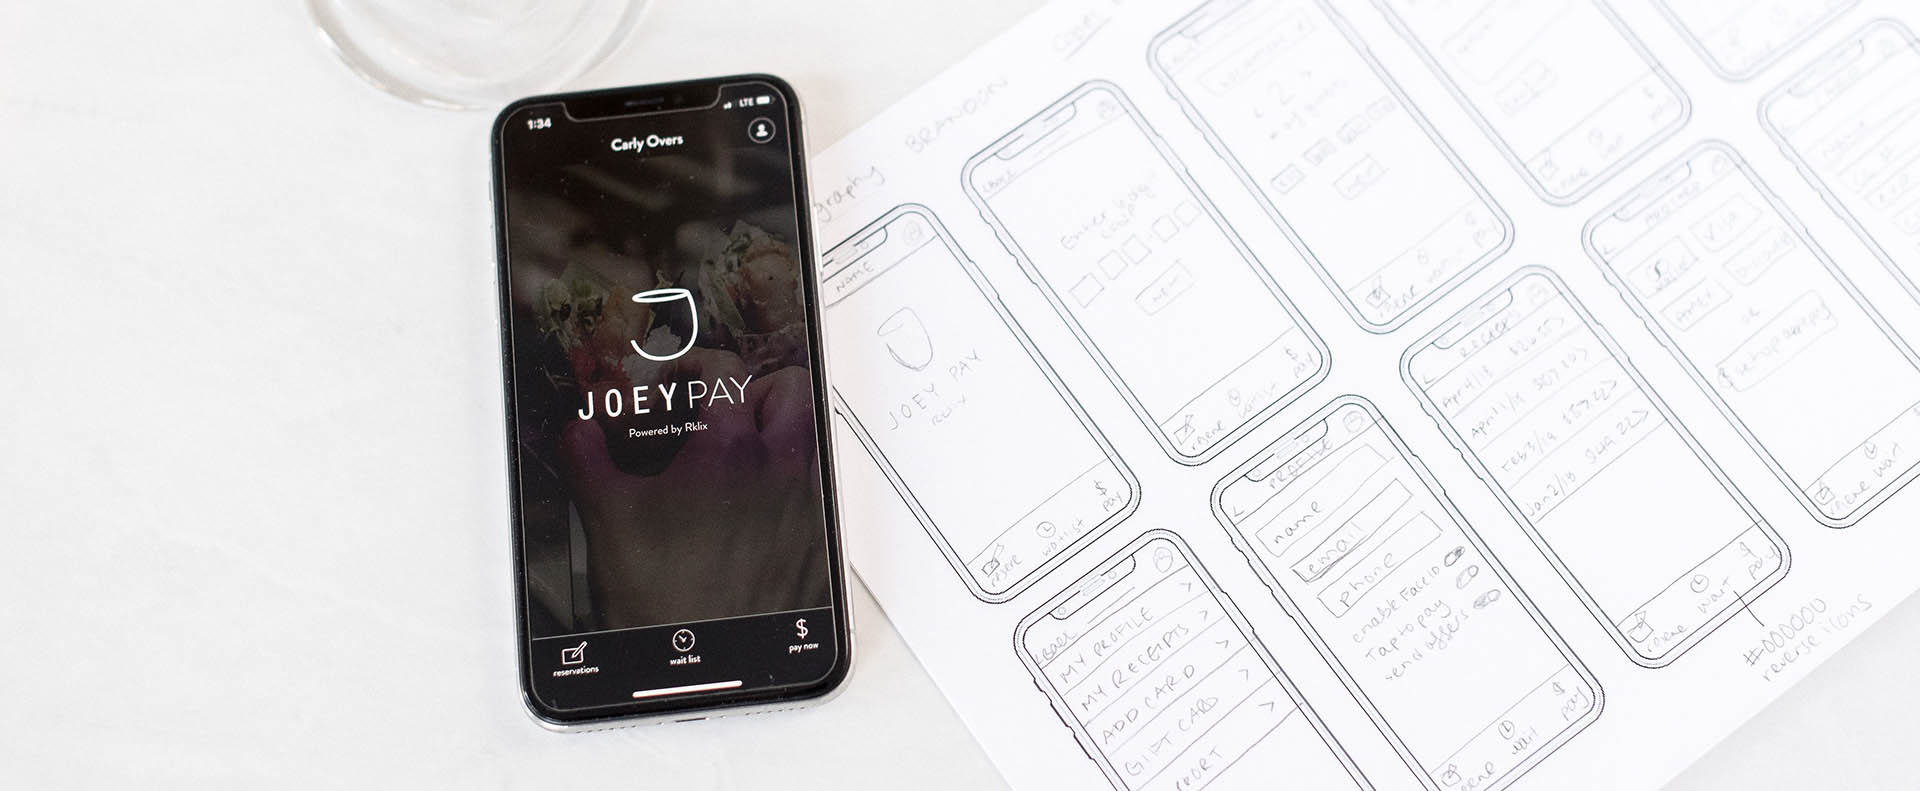 Joey Pay app on mobile beside sketches of the app design - White Canvas Design